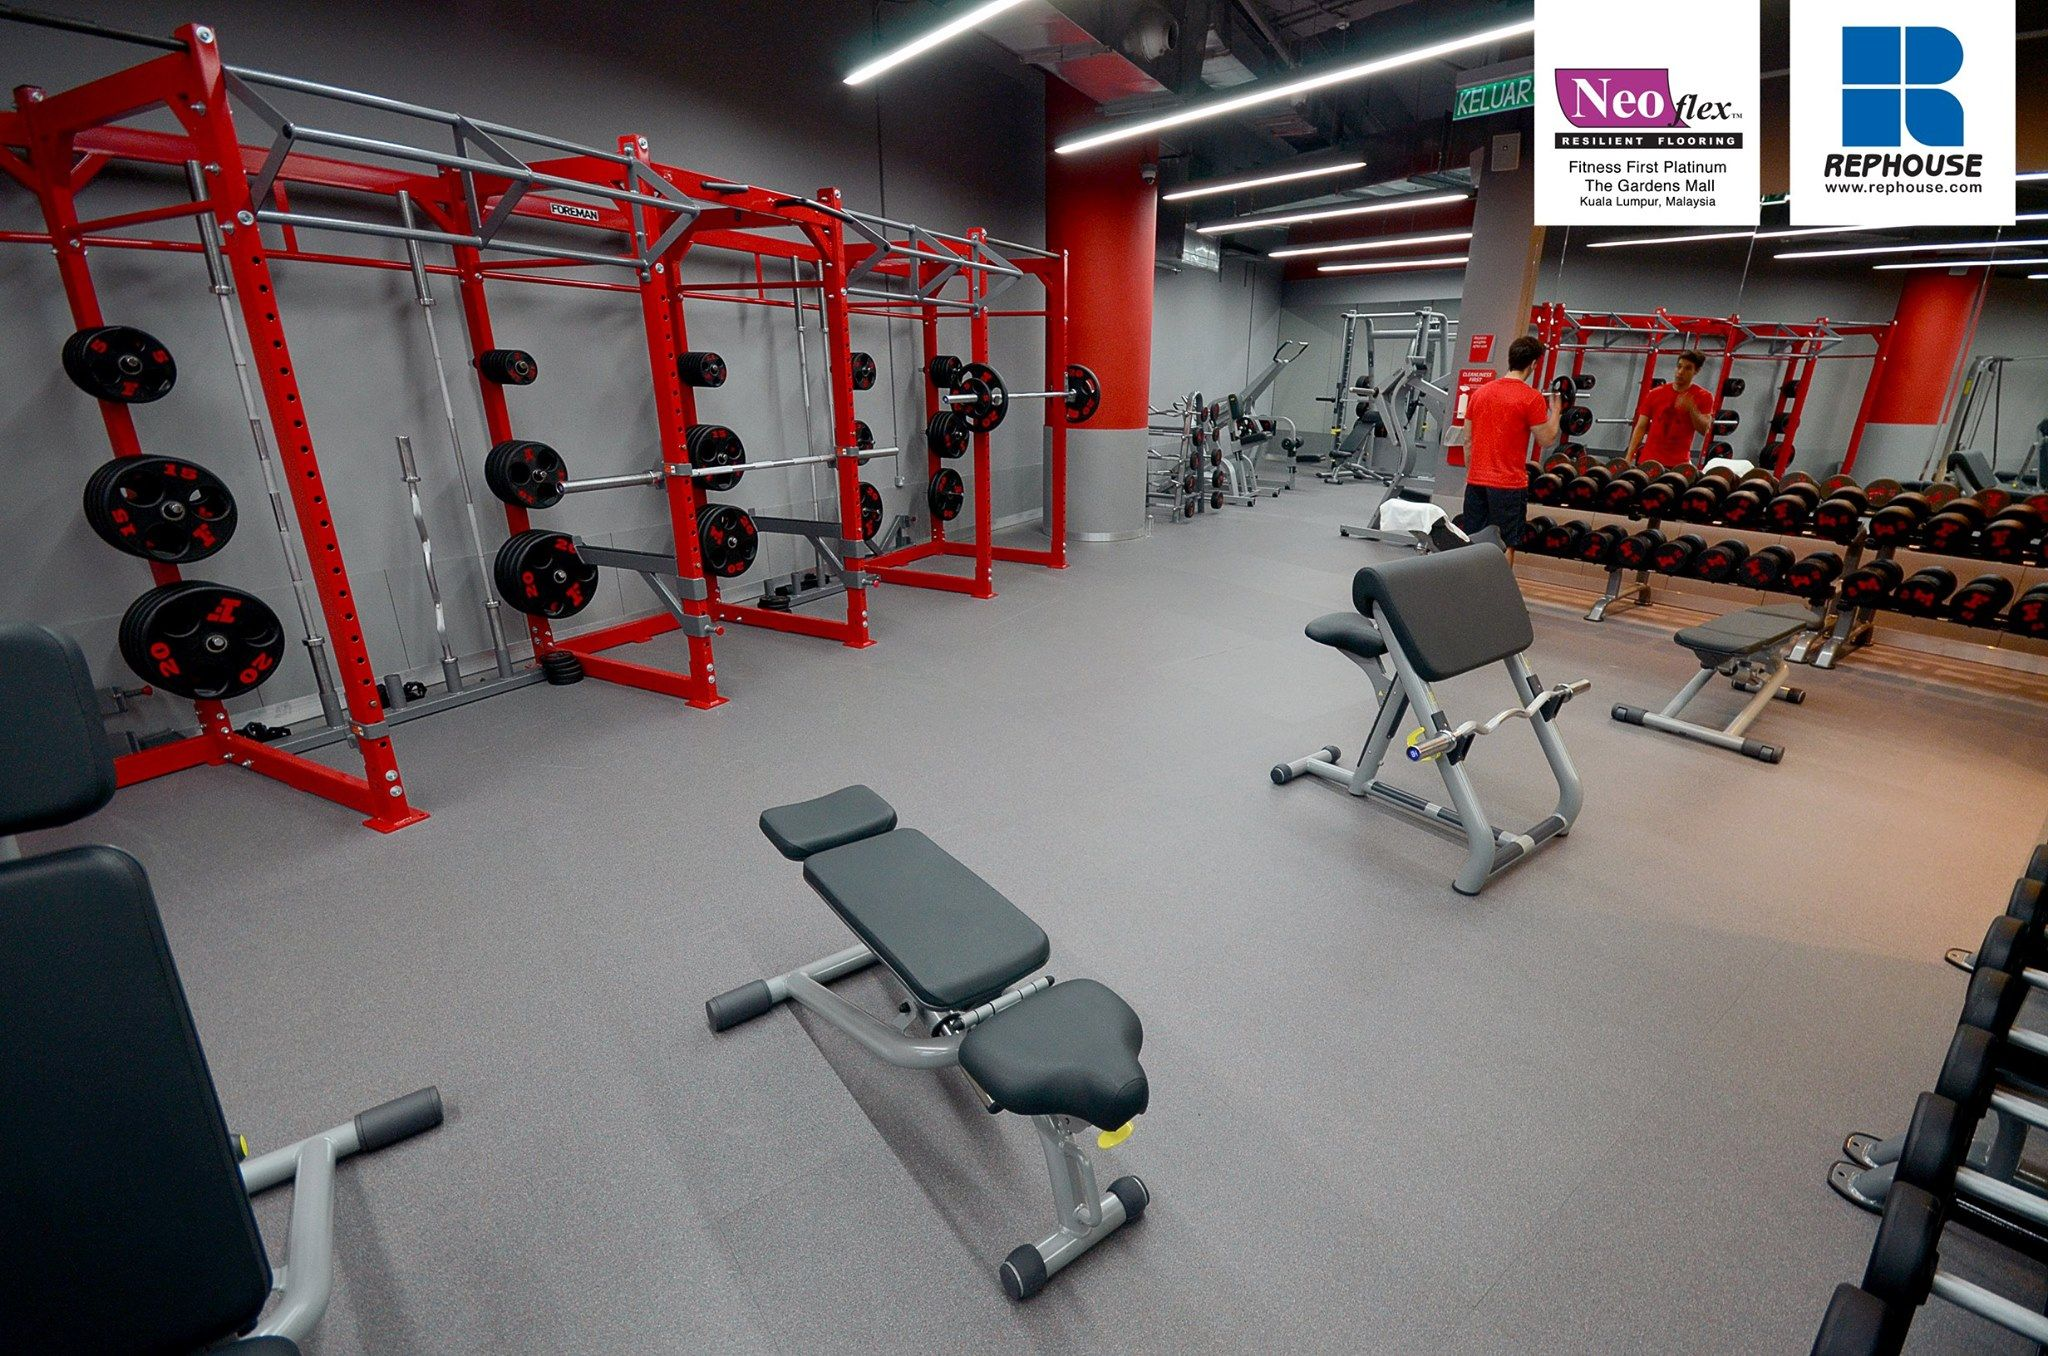 Neoflex 600 Series Reptiles Fitness First The Gardens Mall Malaysia Gym Flooring Rubber Gym Flooring Rubber Flooring